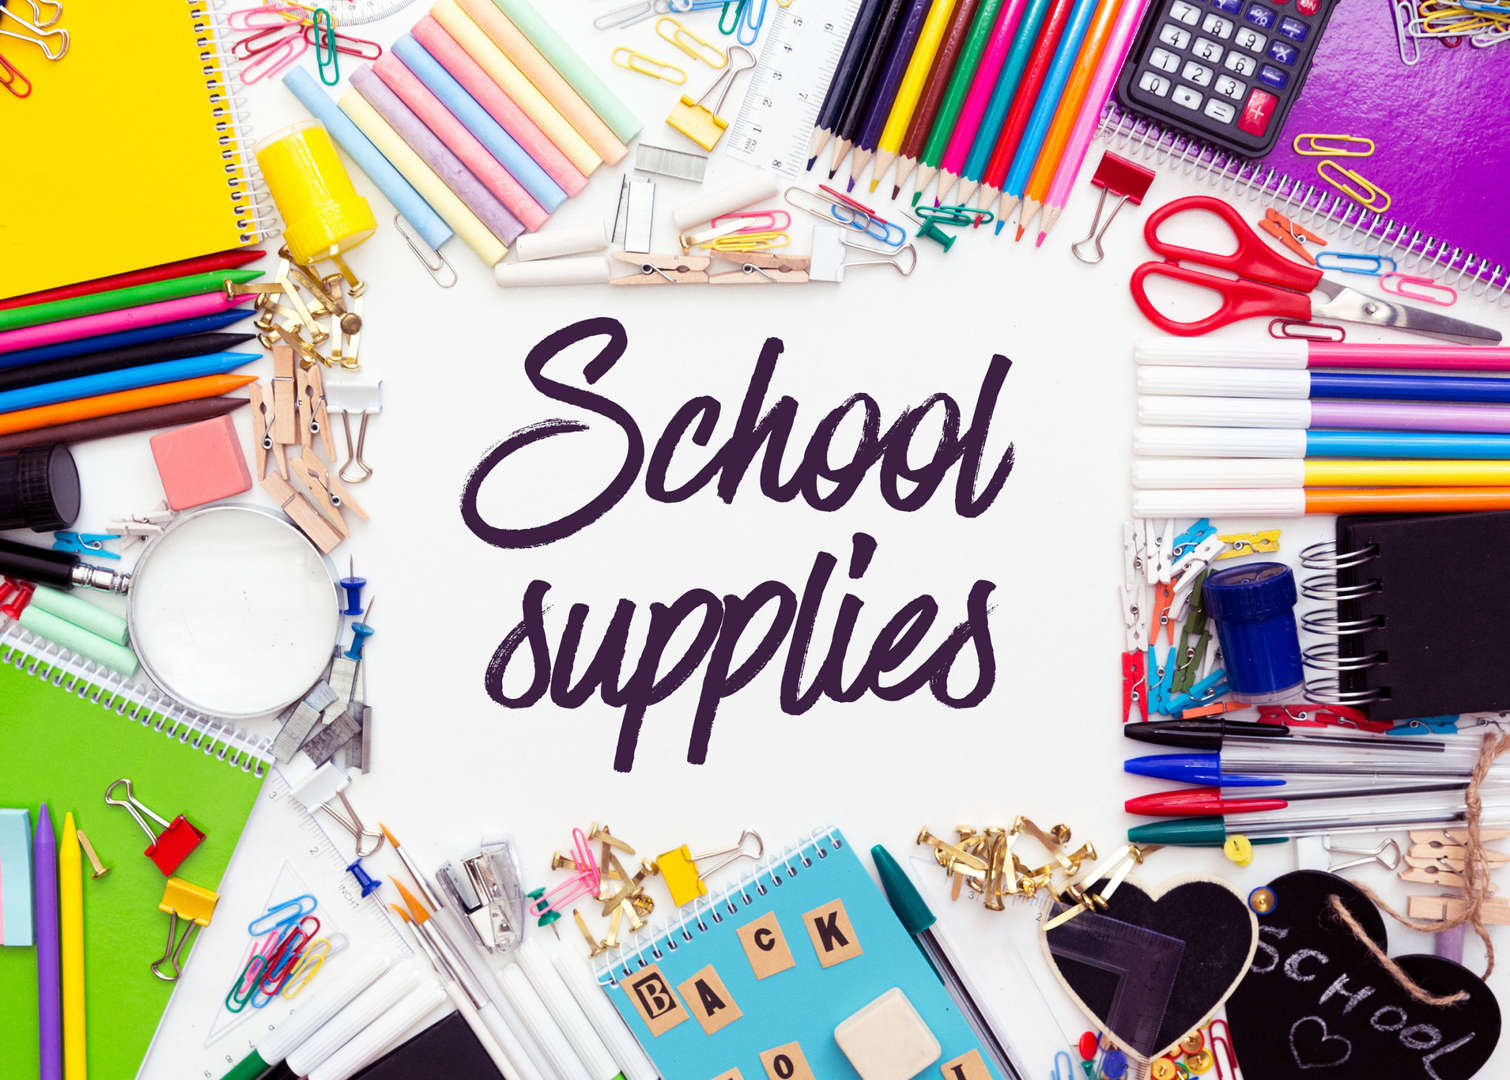 School supplies surrounded by colorful books, pencils, crayons, and notebooks